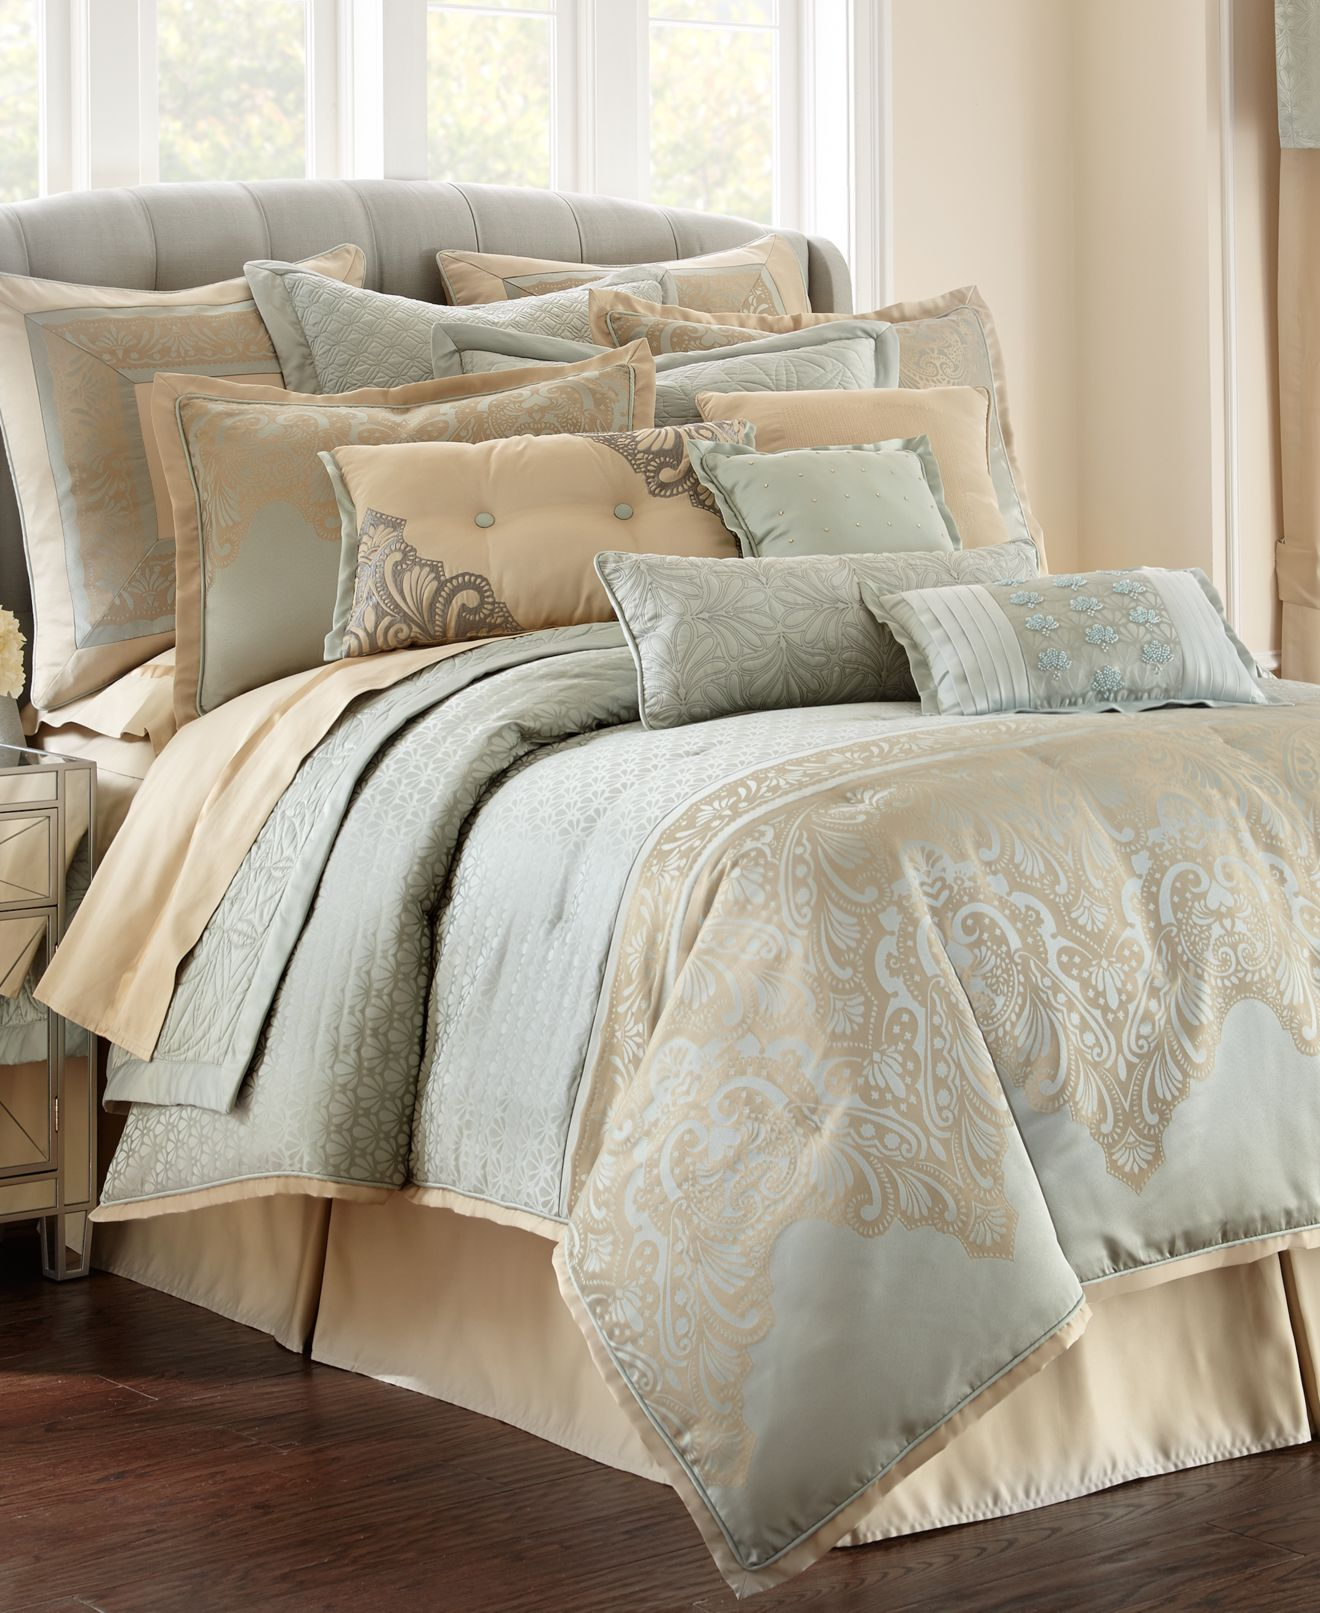 waterford aramis comforter sets - bedding collections - bed & bath